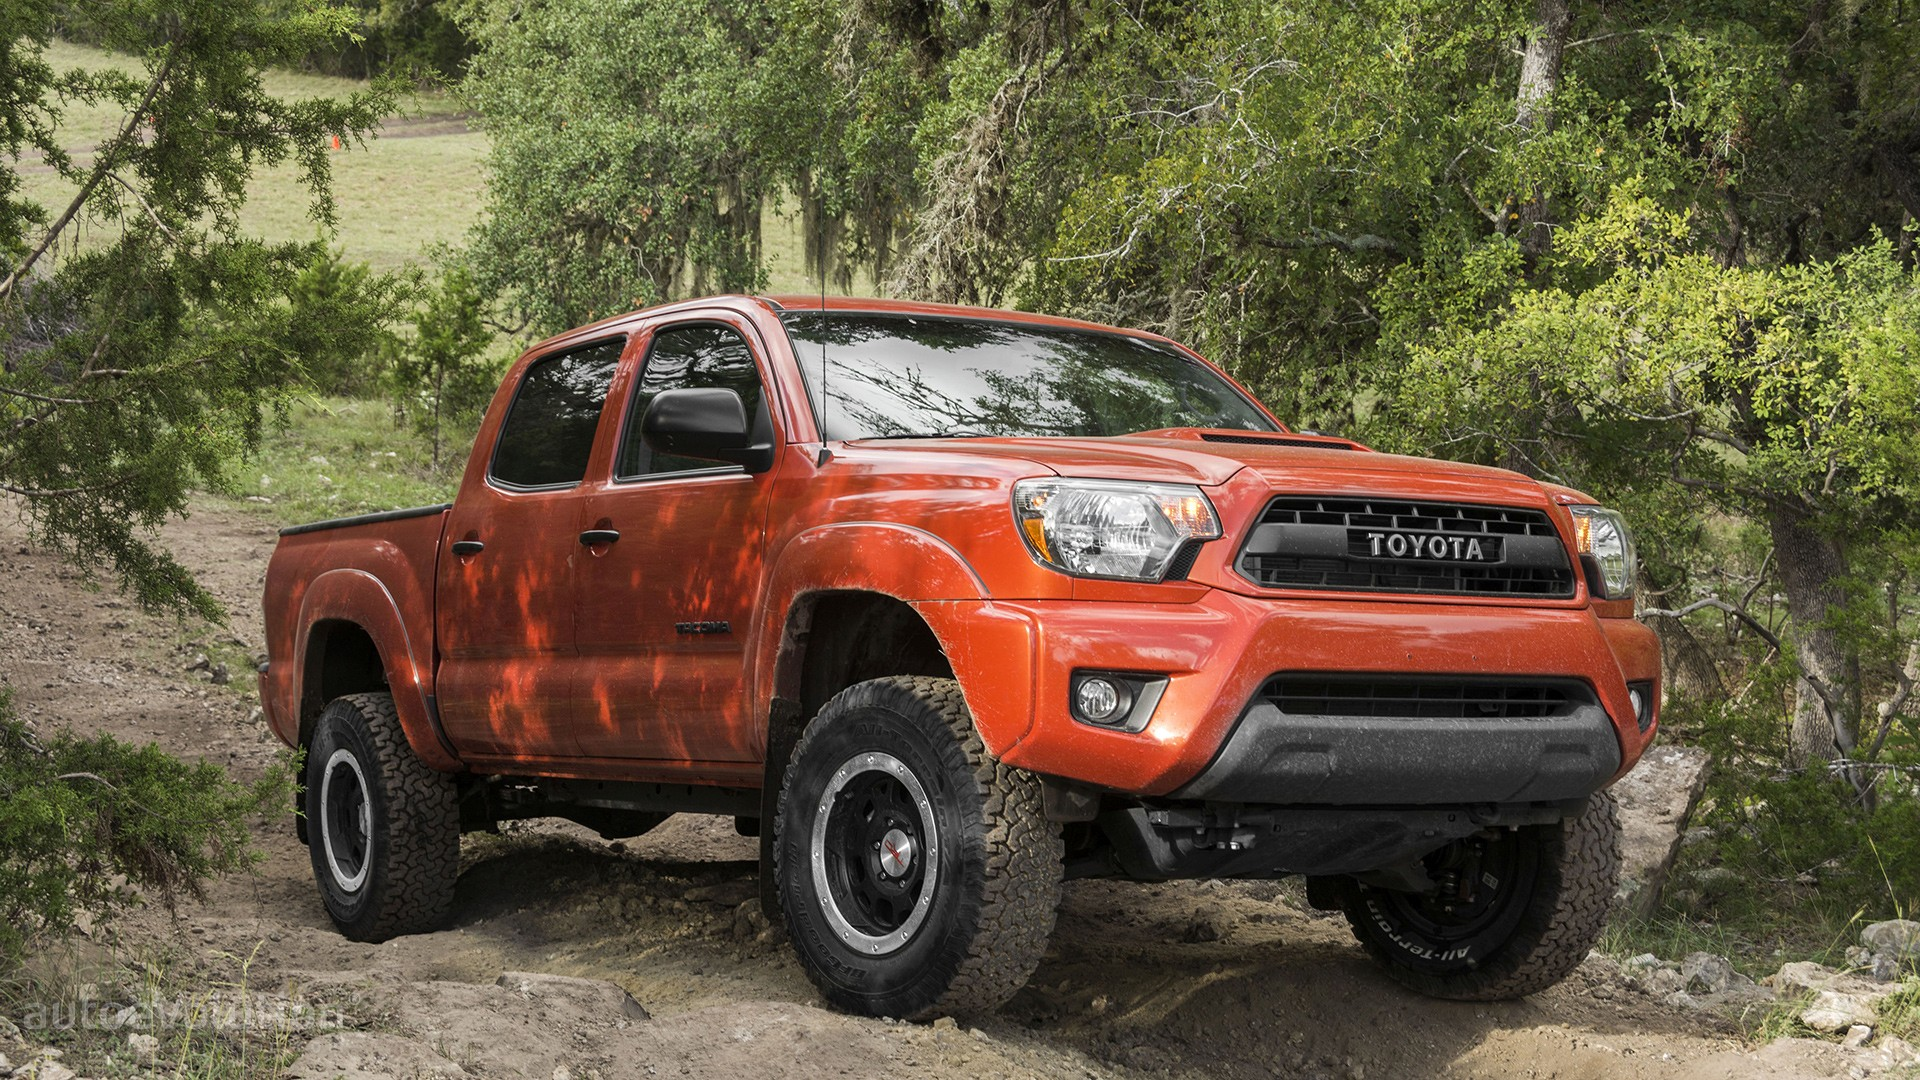 Toyota Tacoma Evolution >> 2015 Toyota Tacoma TRD Pro HD Wallpapers: Conquering Jurassic World - autoevolution